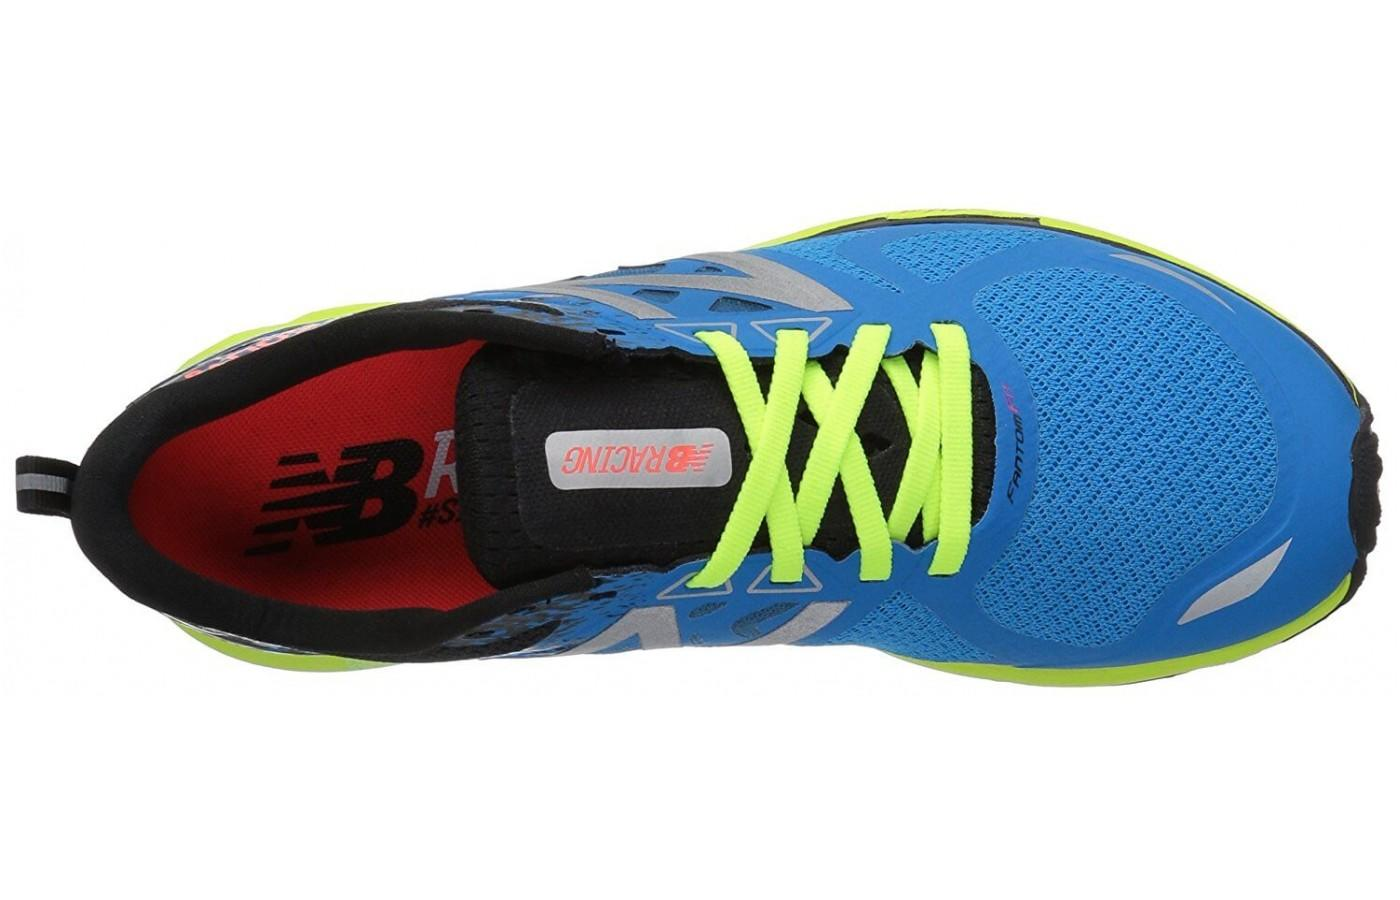 The 1500v3 has a Fantomfit seamless construction in the upper portion.